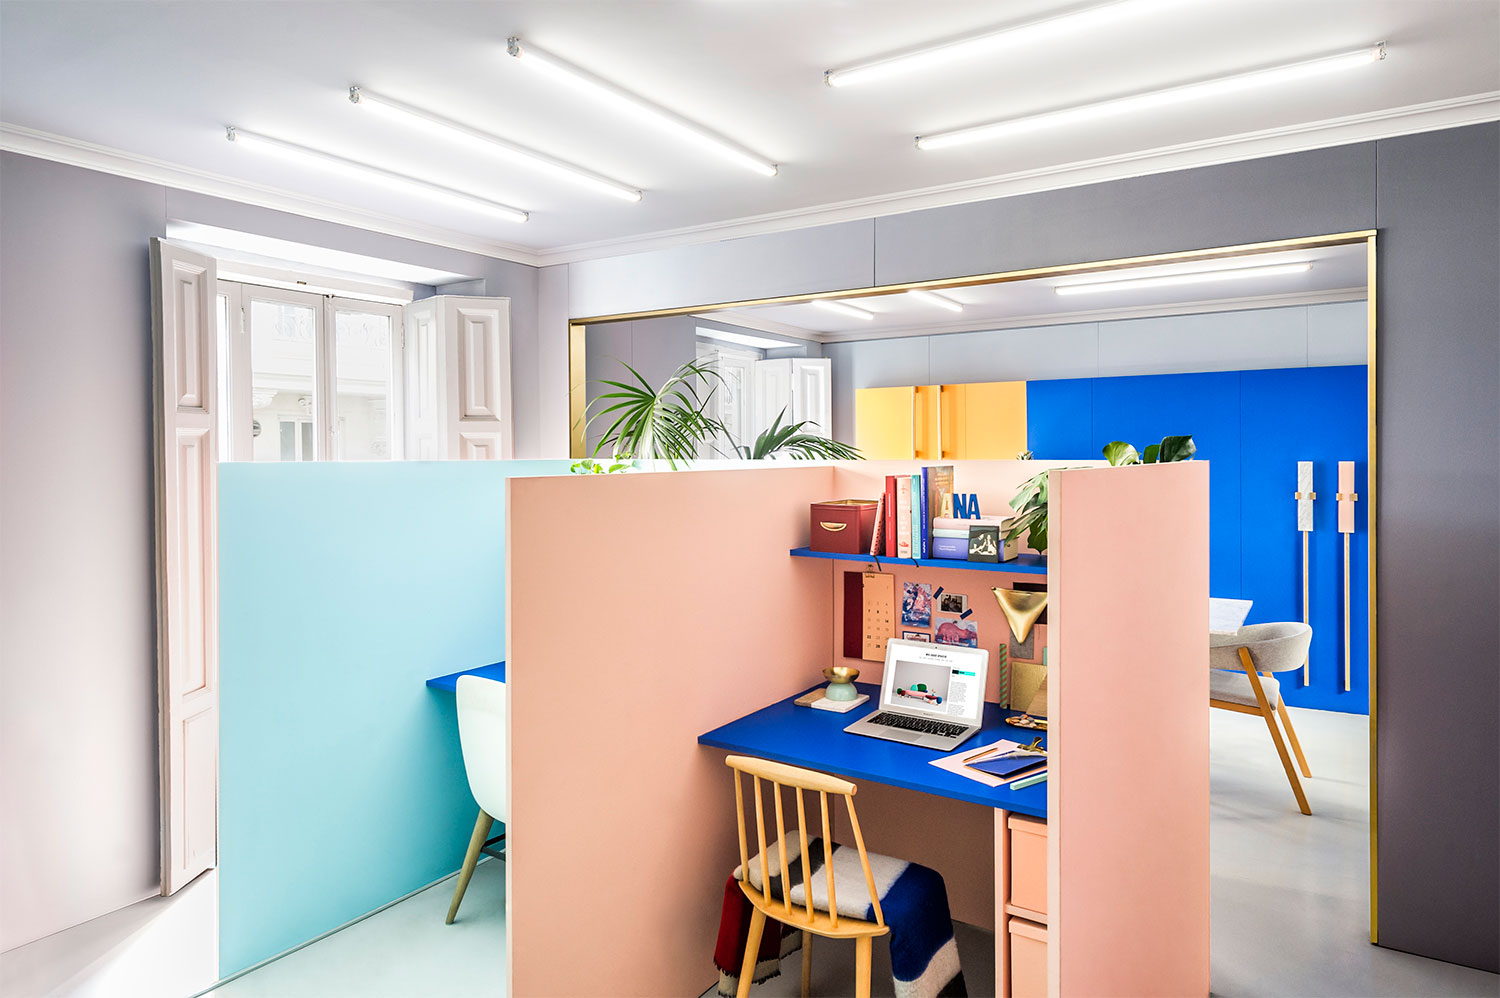 6_Masquespacio Office_Inspirationist